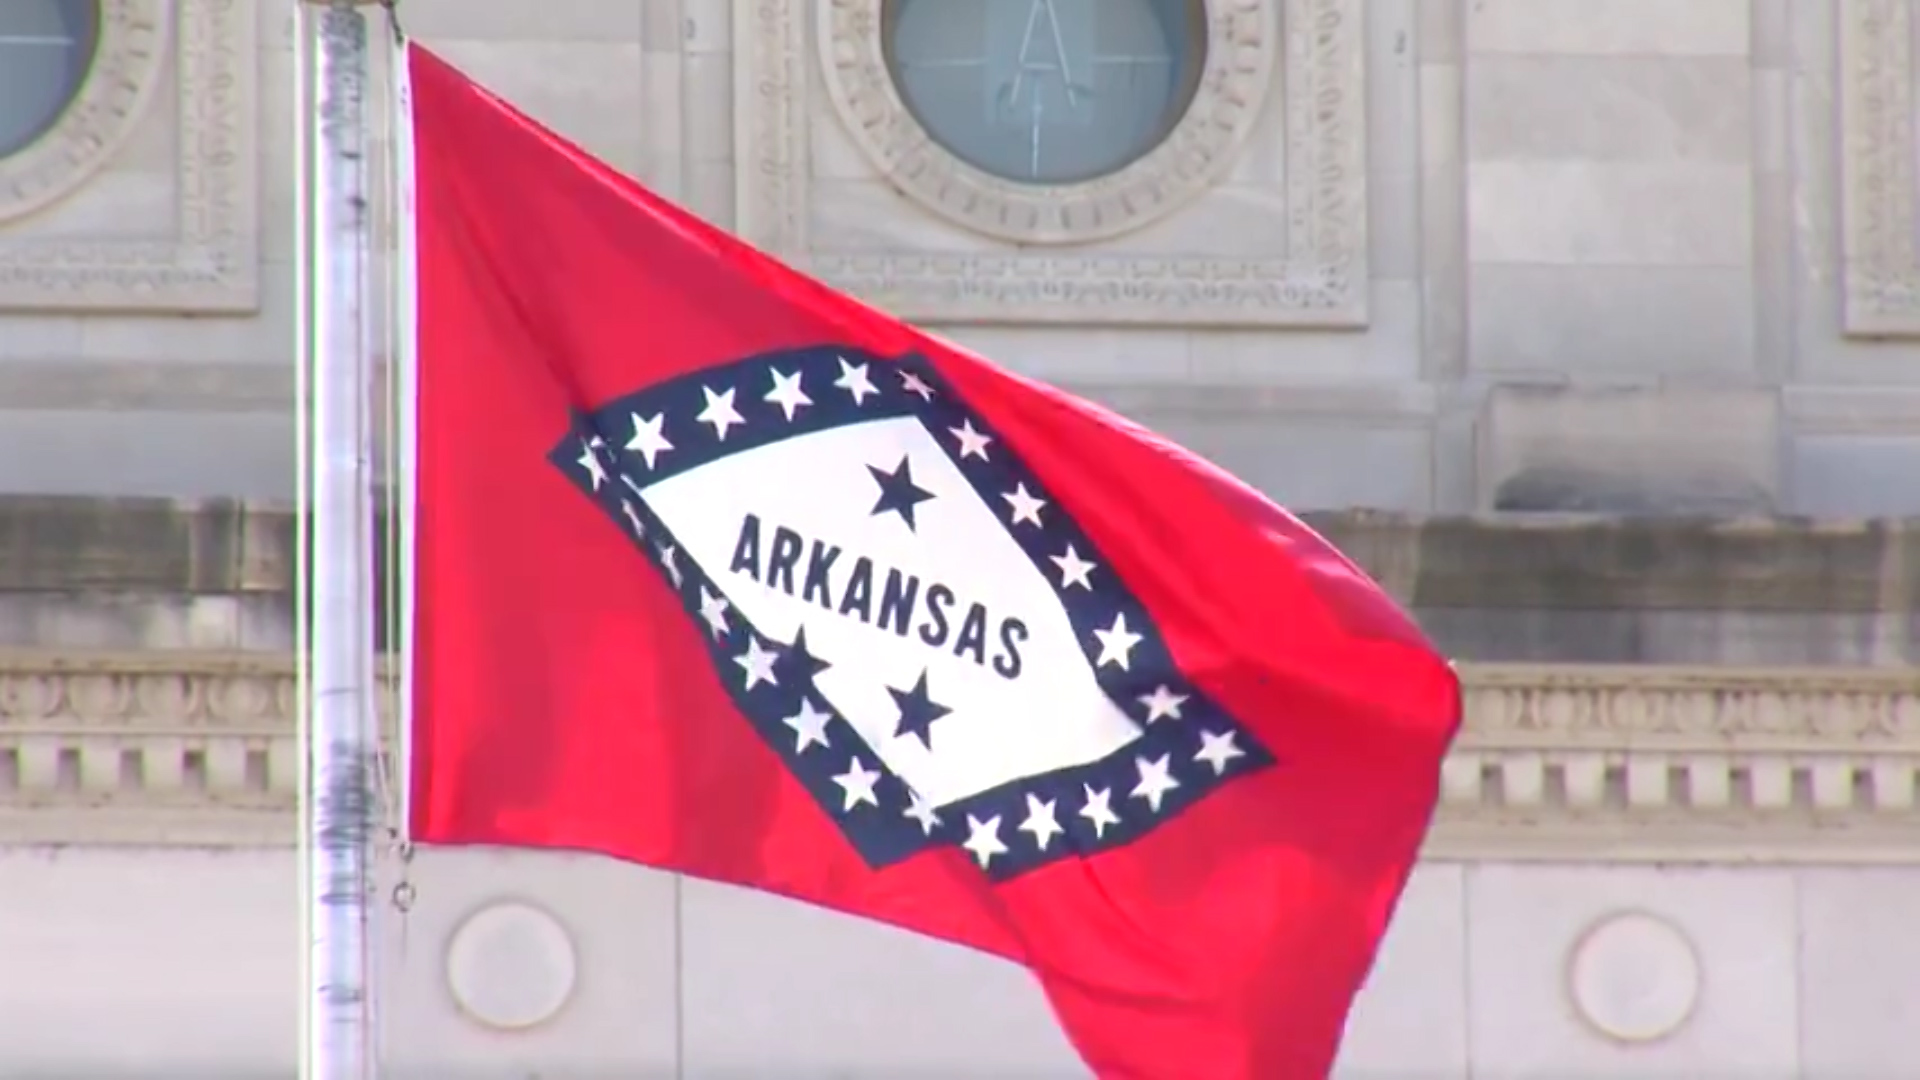 military arkansas flag_1515708749465.jpg.jpg